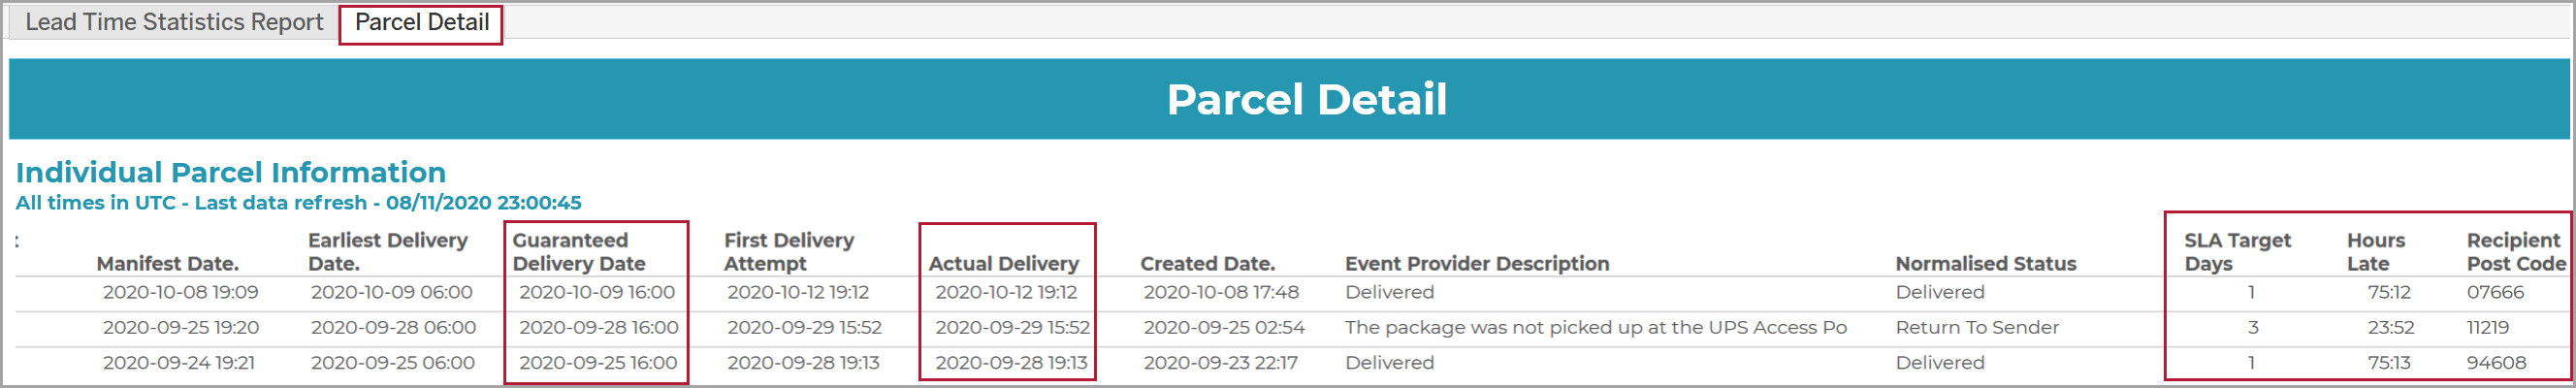 Germany_Parcel_Detail_2_.png